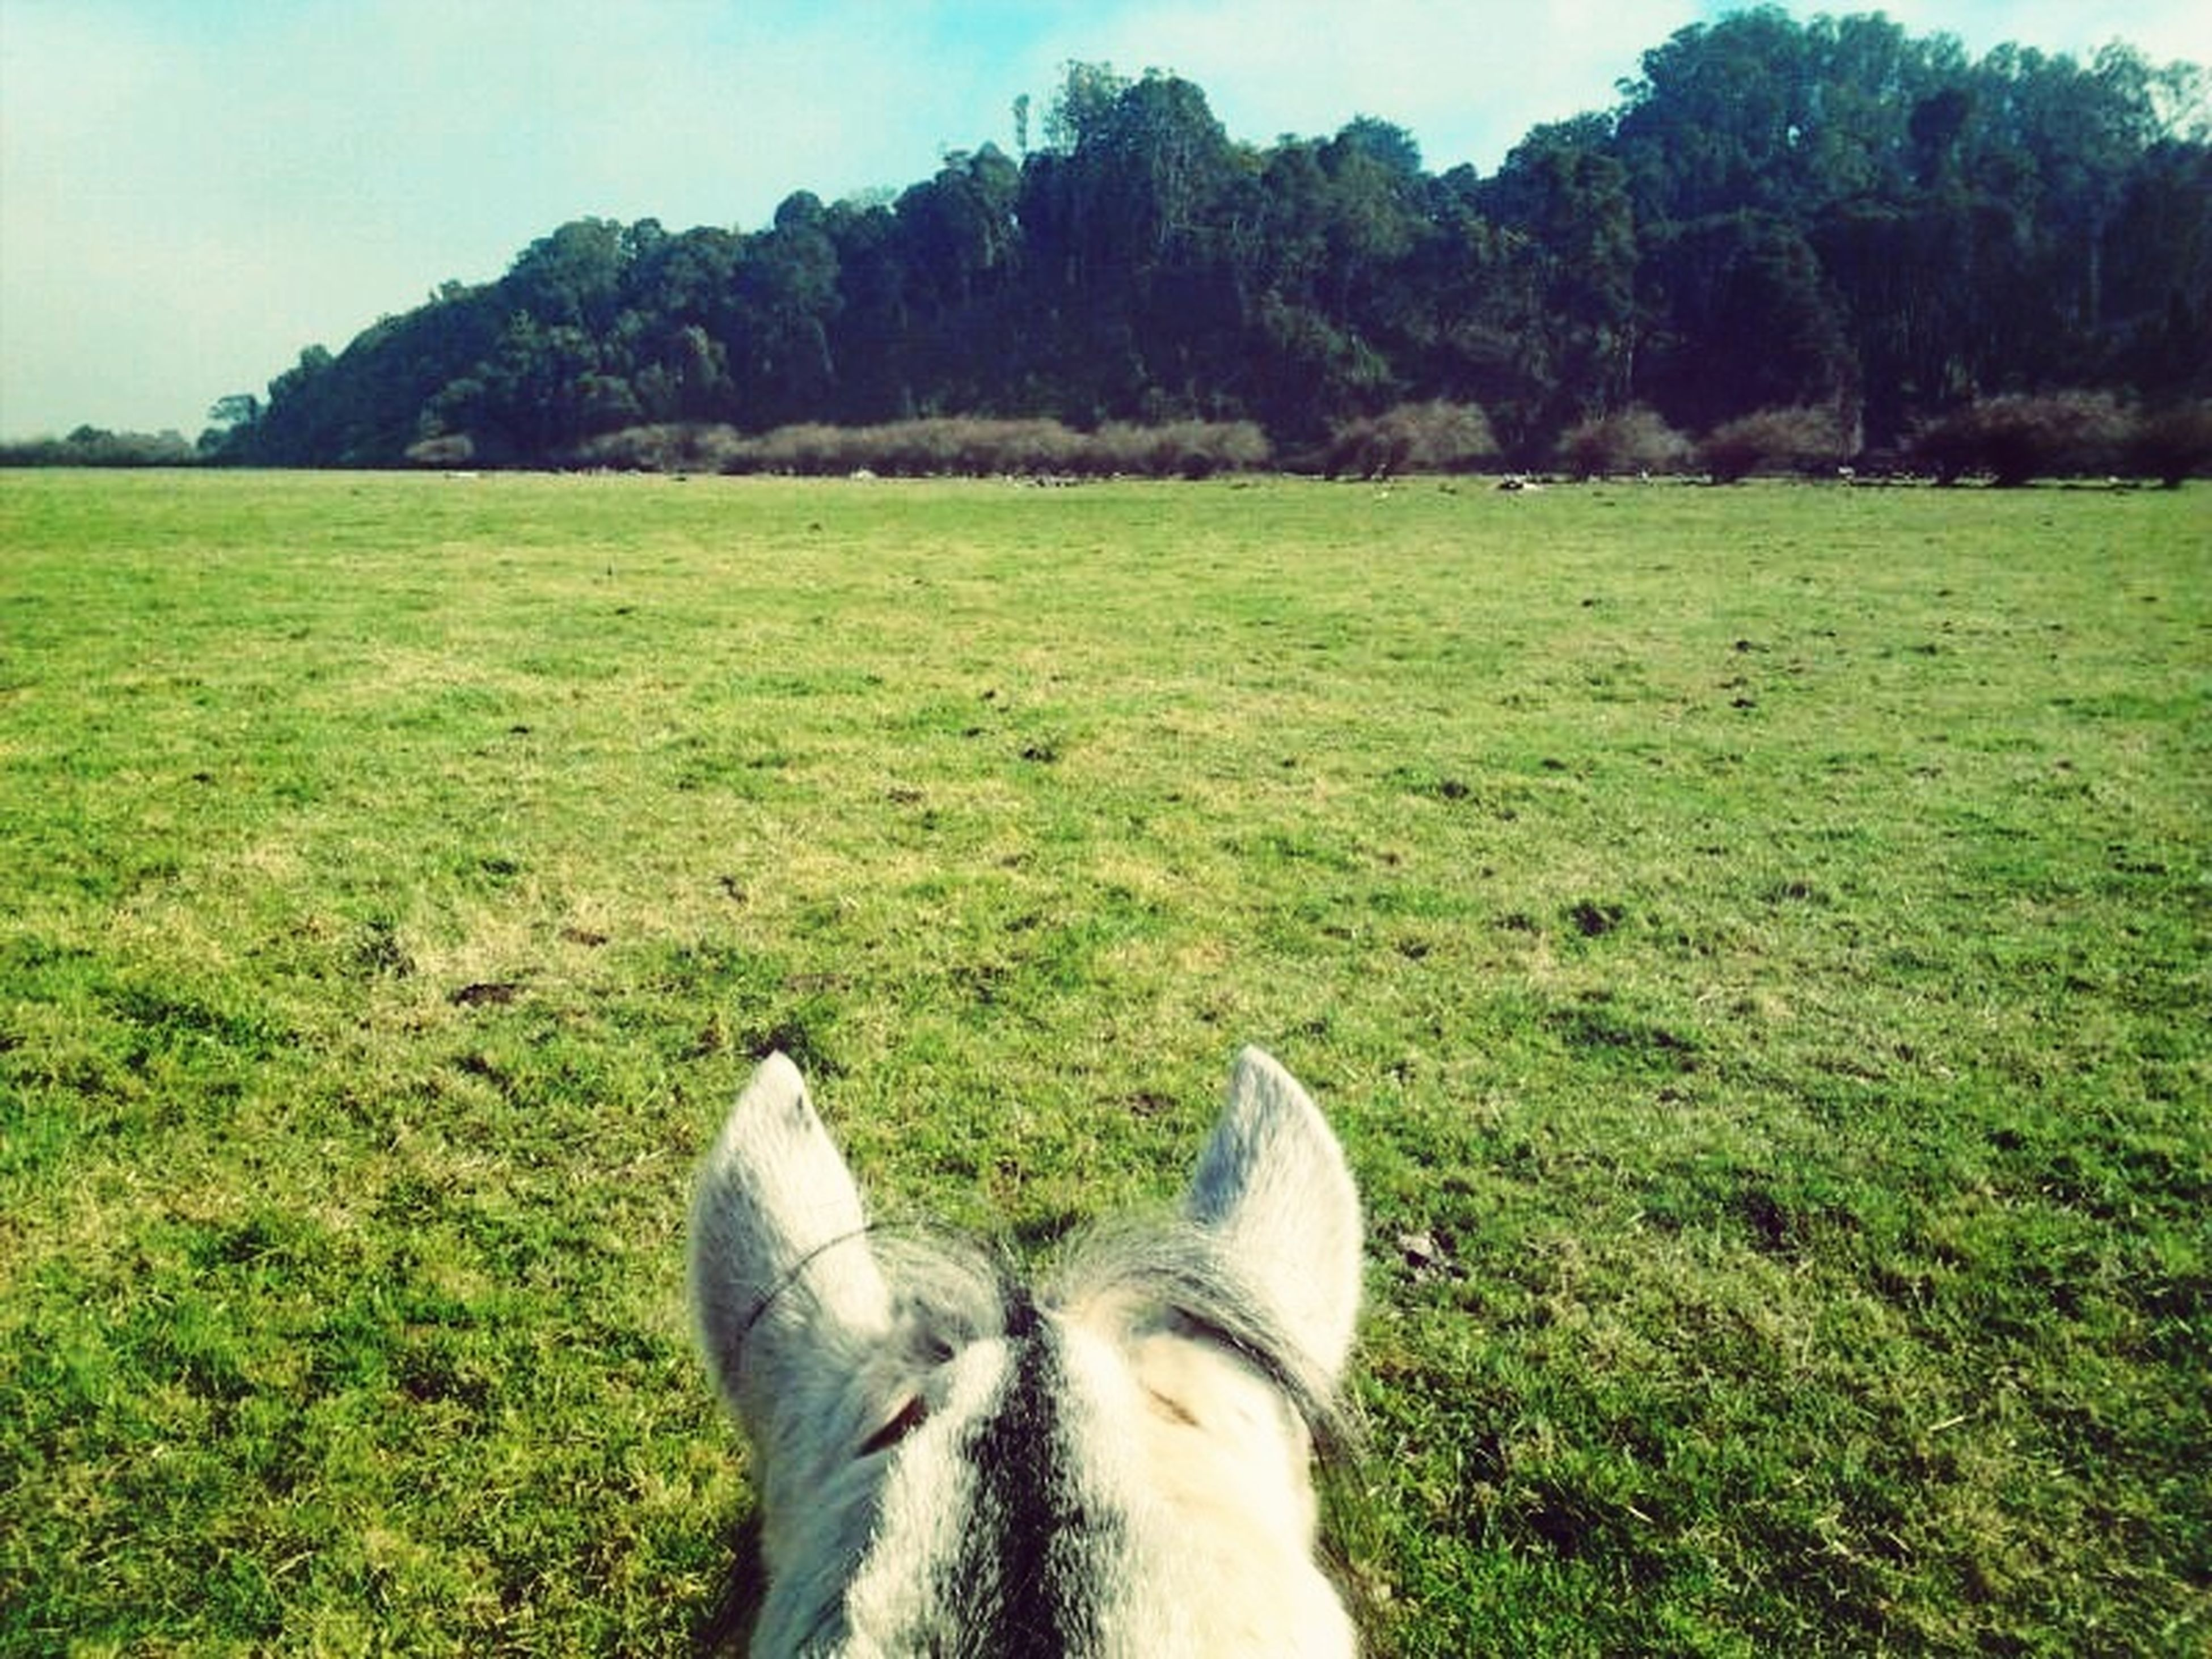 grass, domestic animals, mammal, animal themes, field, grassy, low section, pets, one animal, personal perspective, dog, person, green color, part of, unrecognizable person, relaxation, landscape